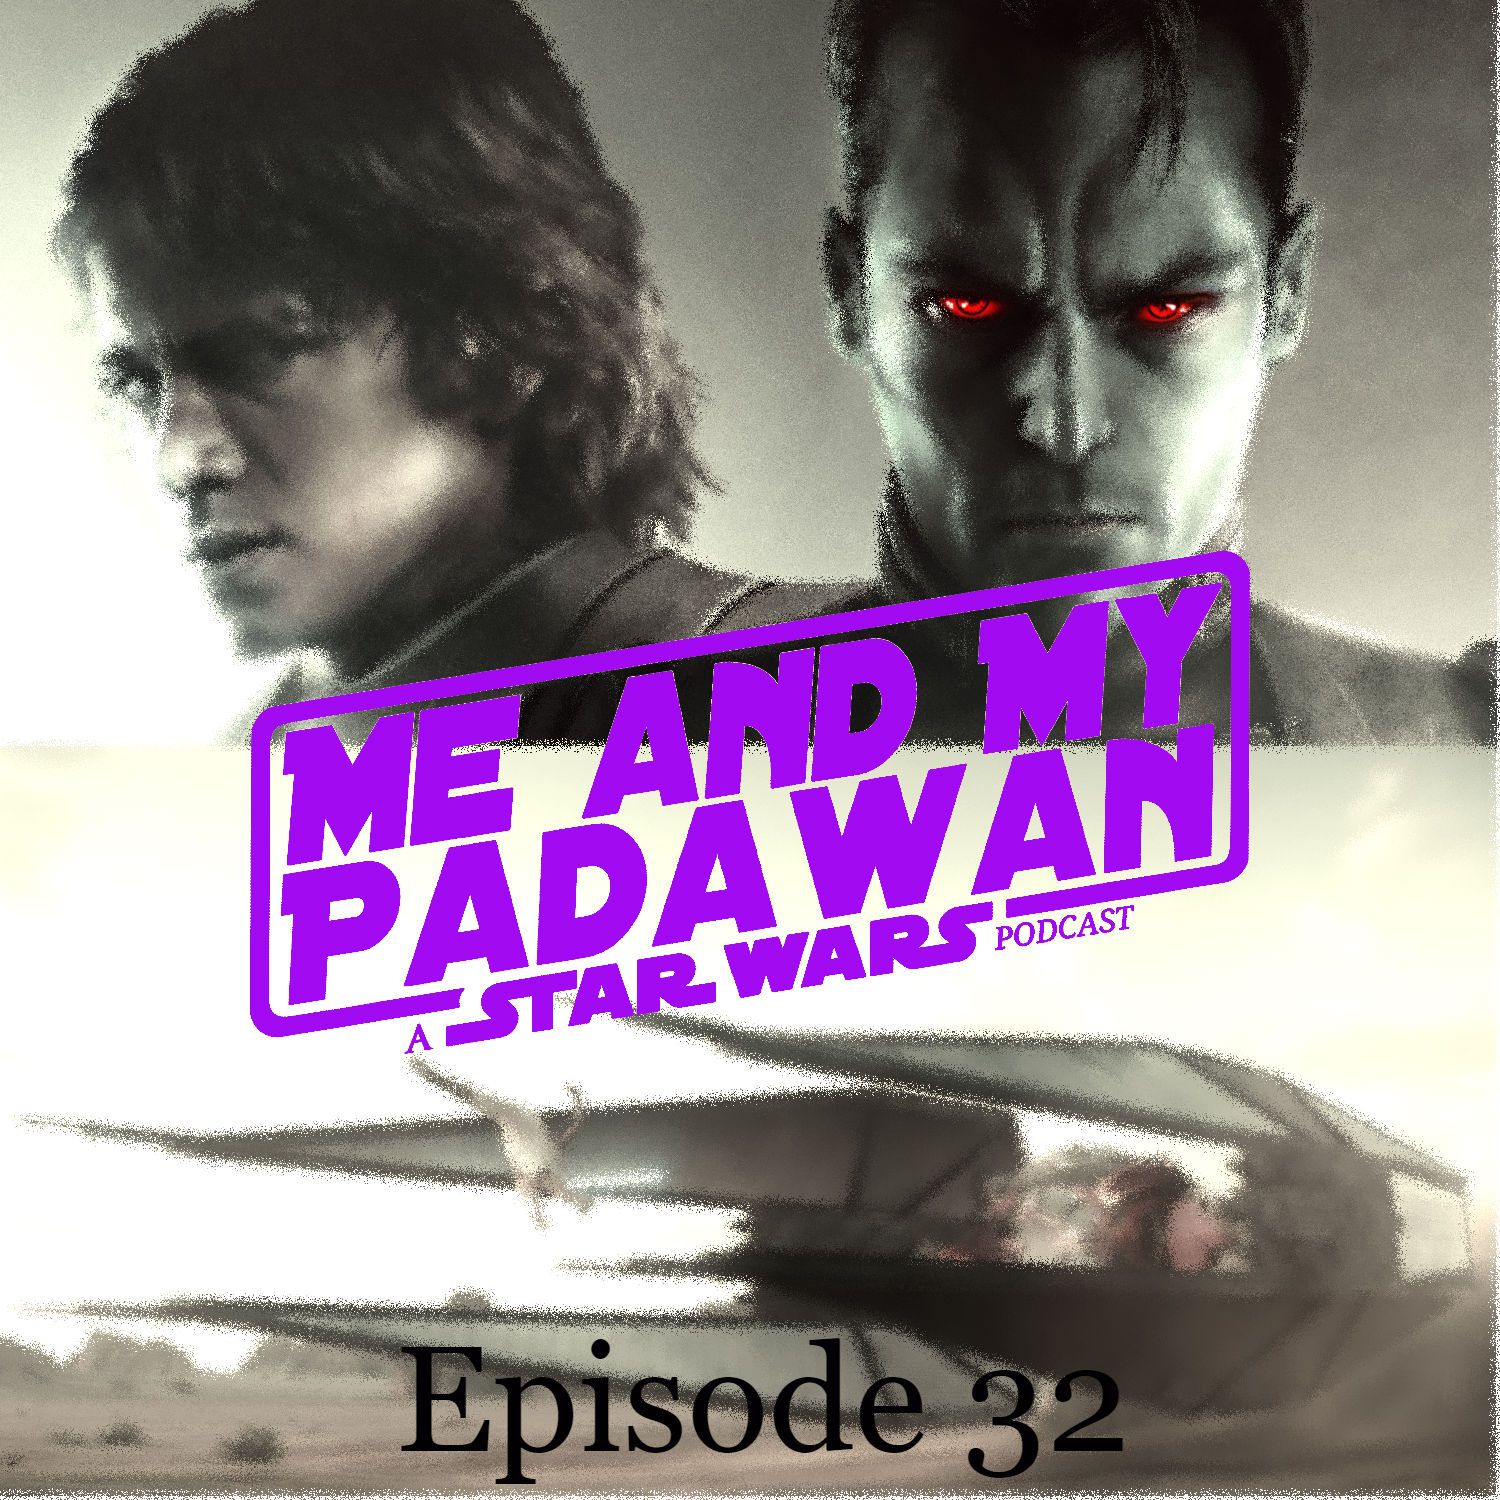 Episode 32 - Star Wars: The Rise of Skywalker Trailer Discussion and Theories